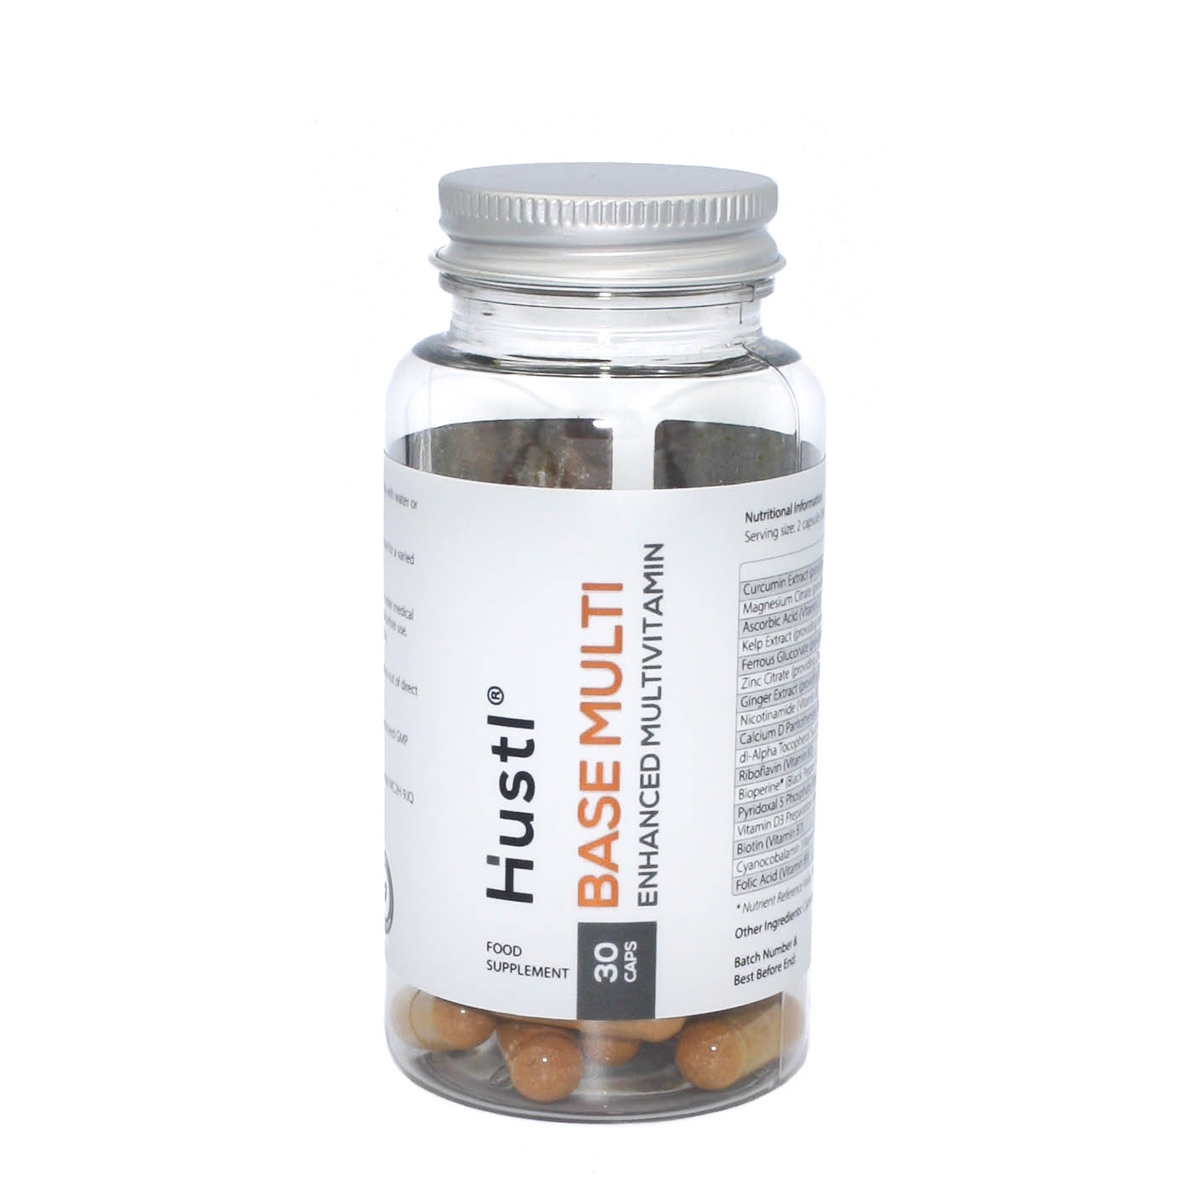 Hustl® 'Base' Advanced Multi Vitamin & Mineral with Curcumin & Kelp - 30 Capsules